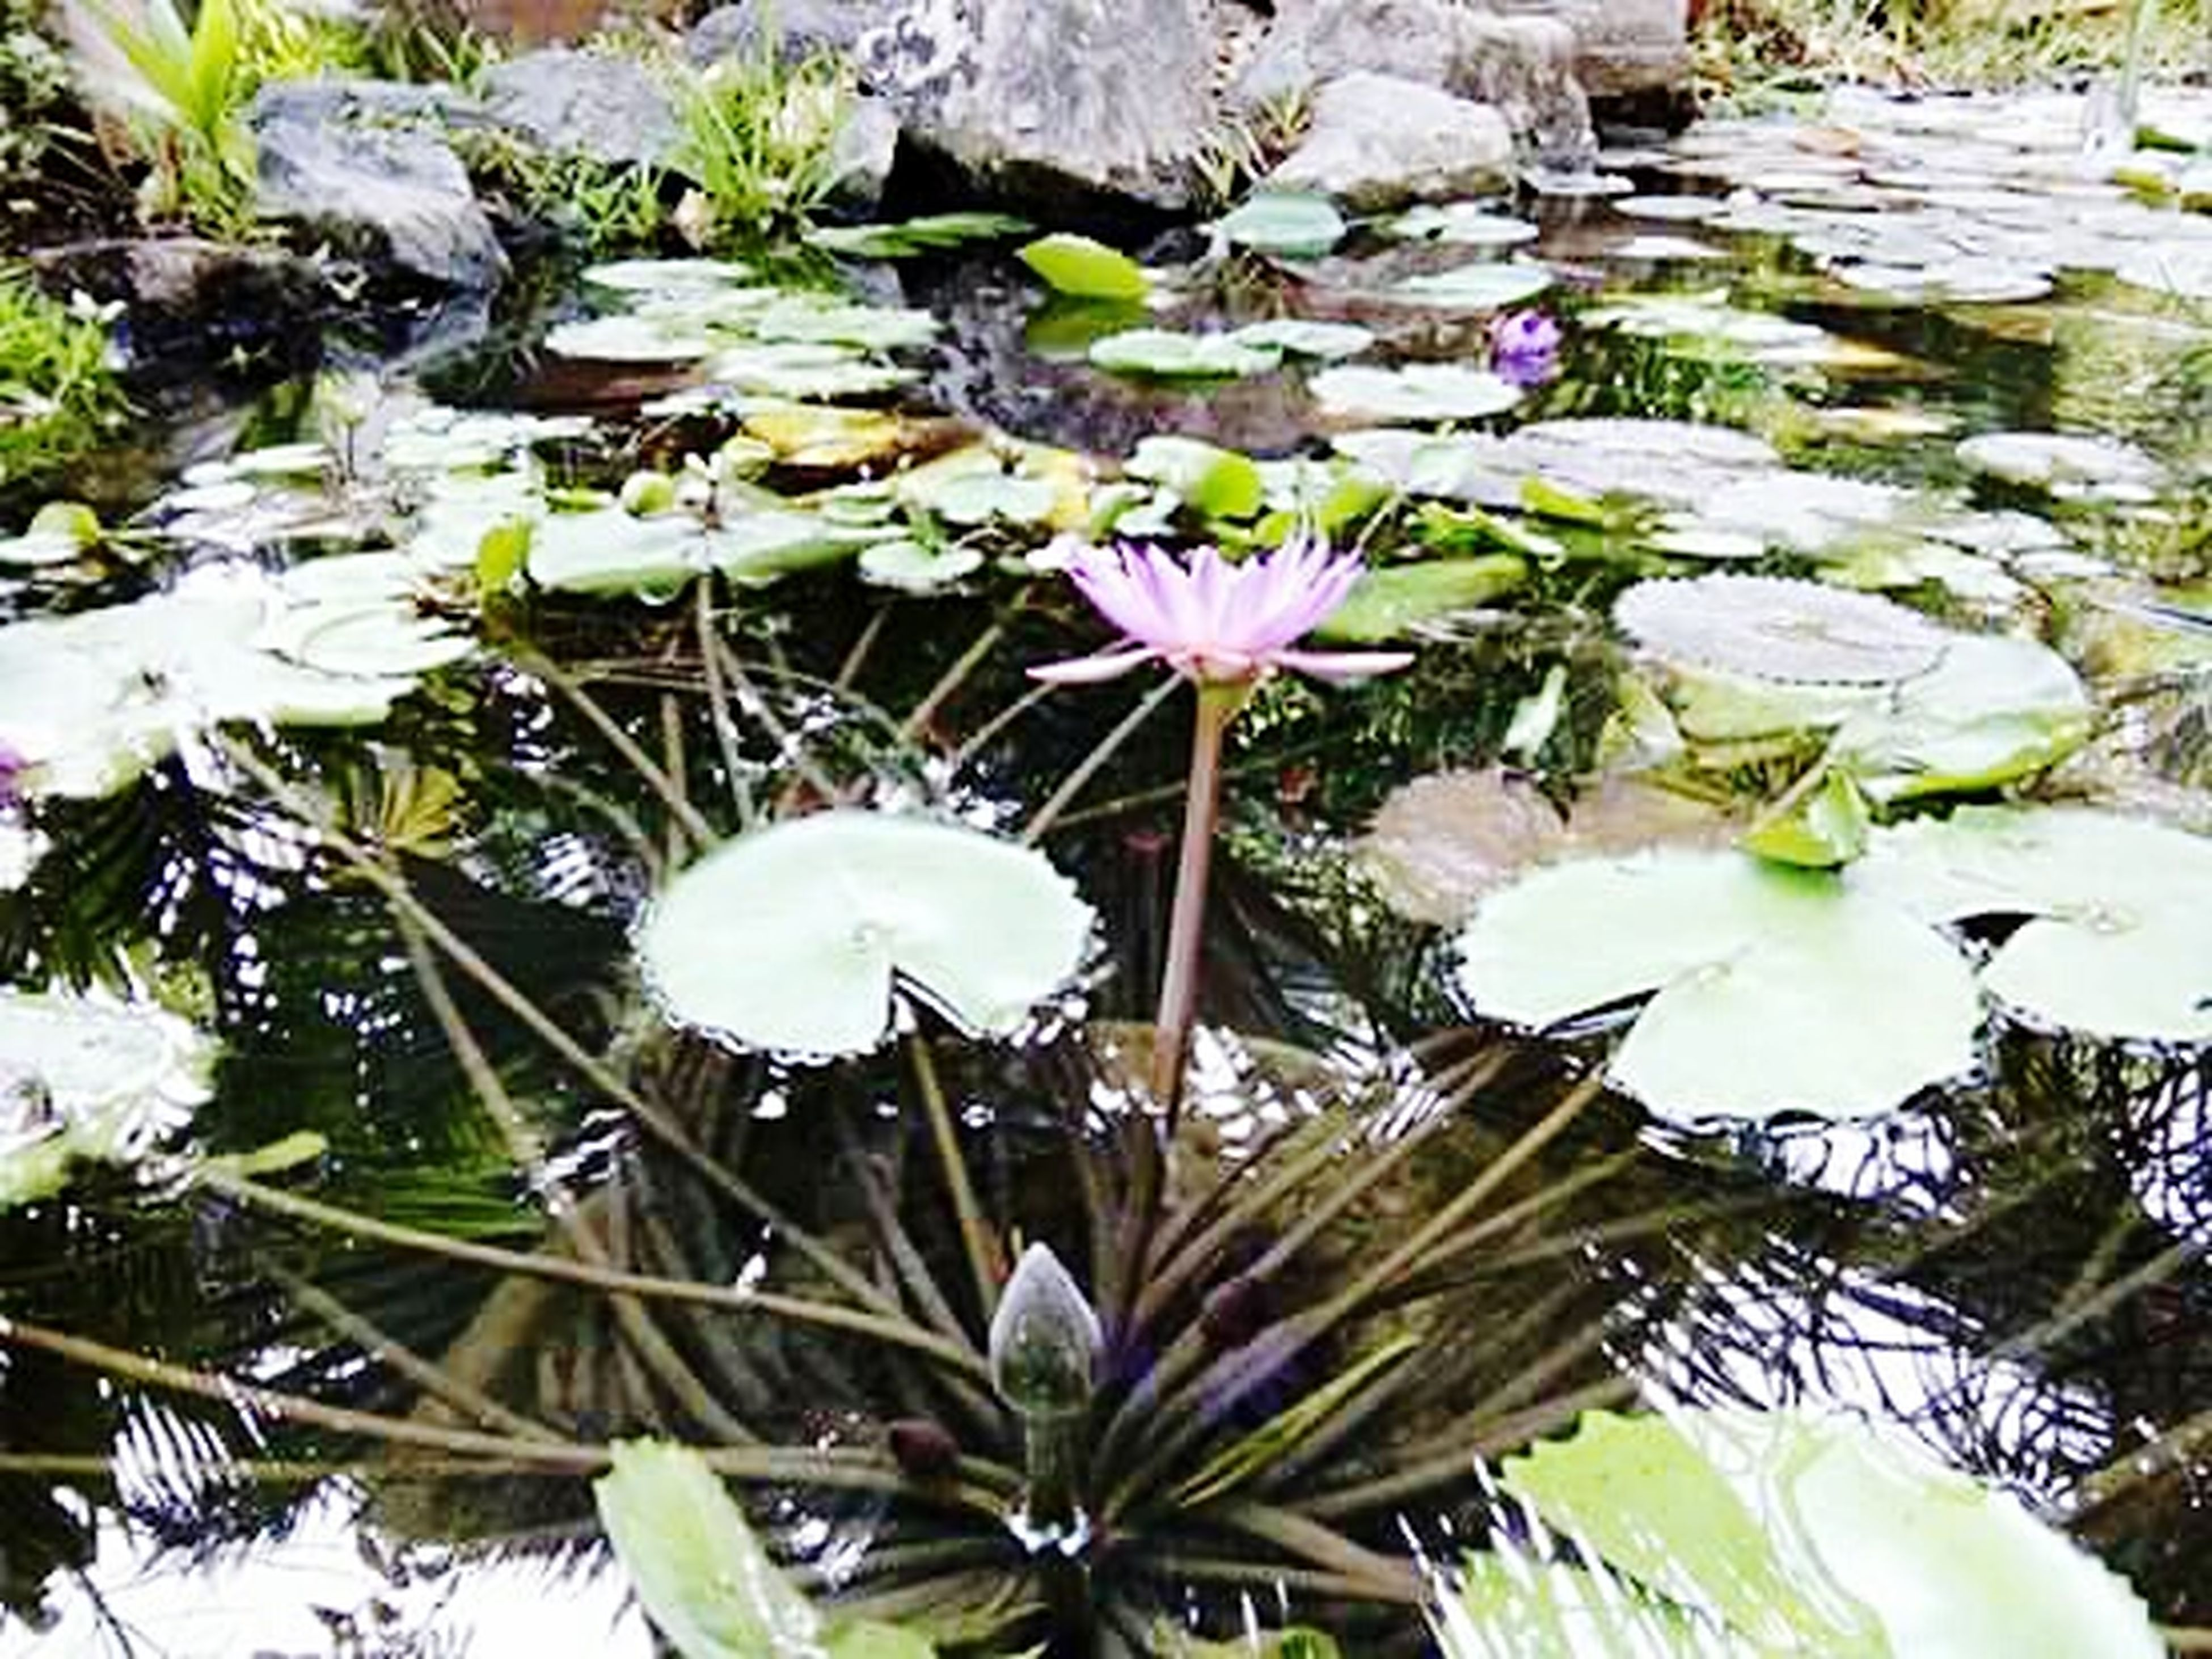 flower, freshness, fragility, growth, water, beauty in nature, water lily, nature, petal, plant, close-up, floating on water, lotus water lily, flower head, blossom, springtime, day, growing, botany, in bloom, pink color, green color, bloom, no people, tranquility